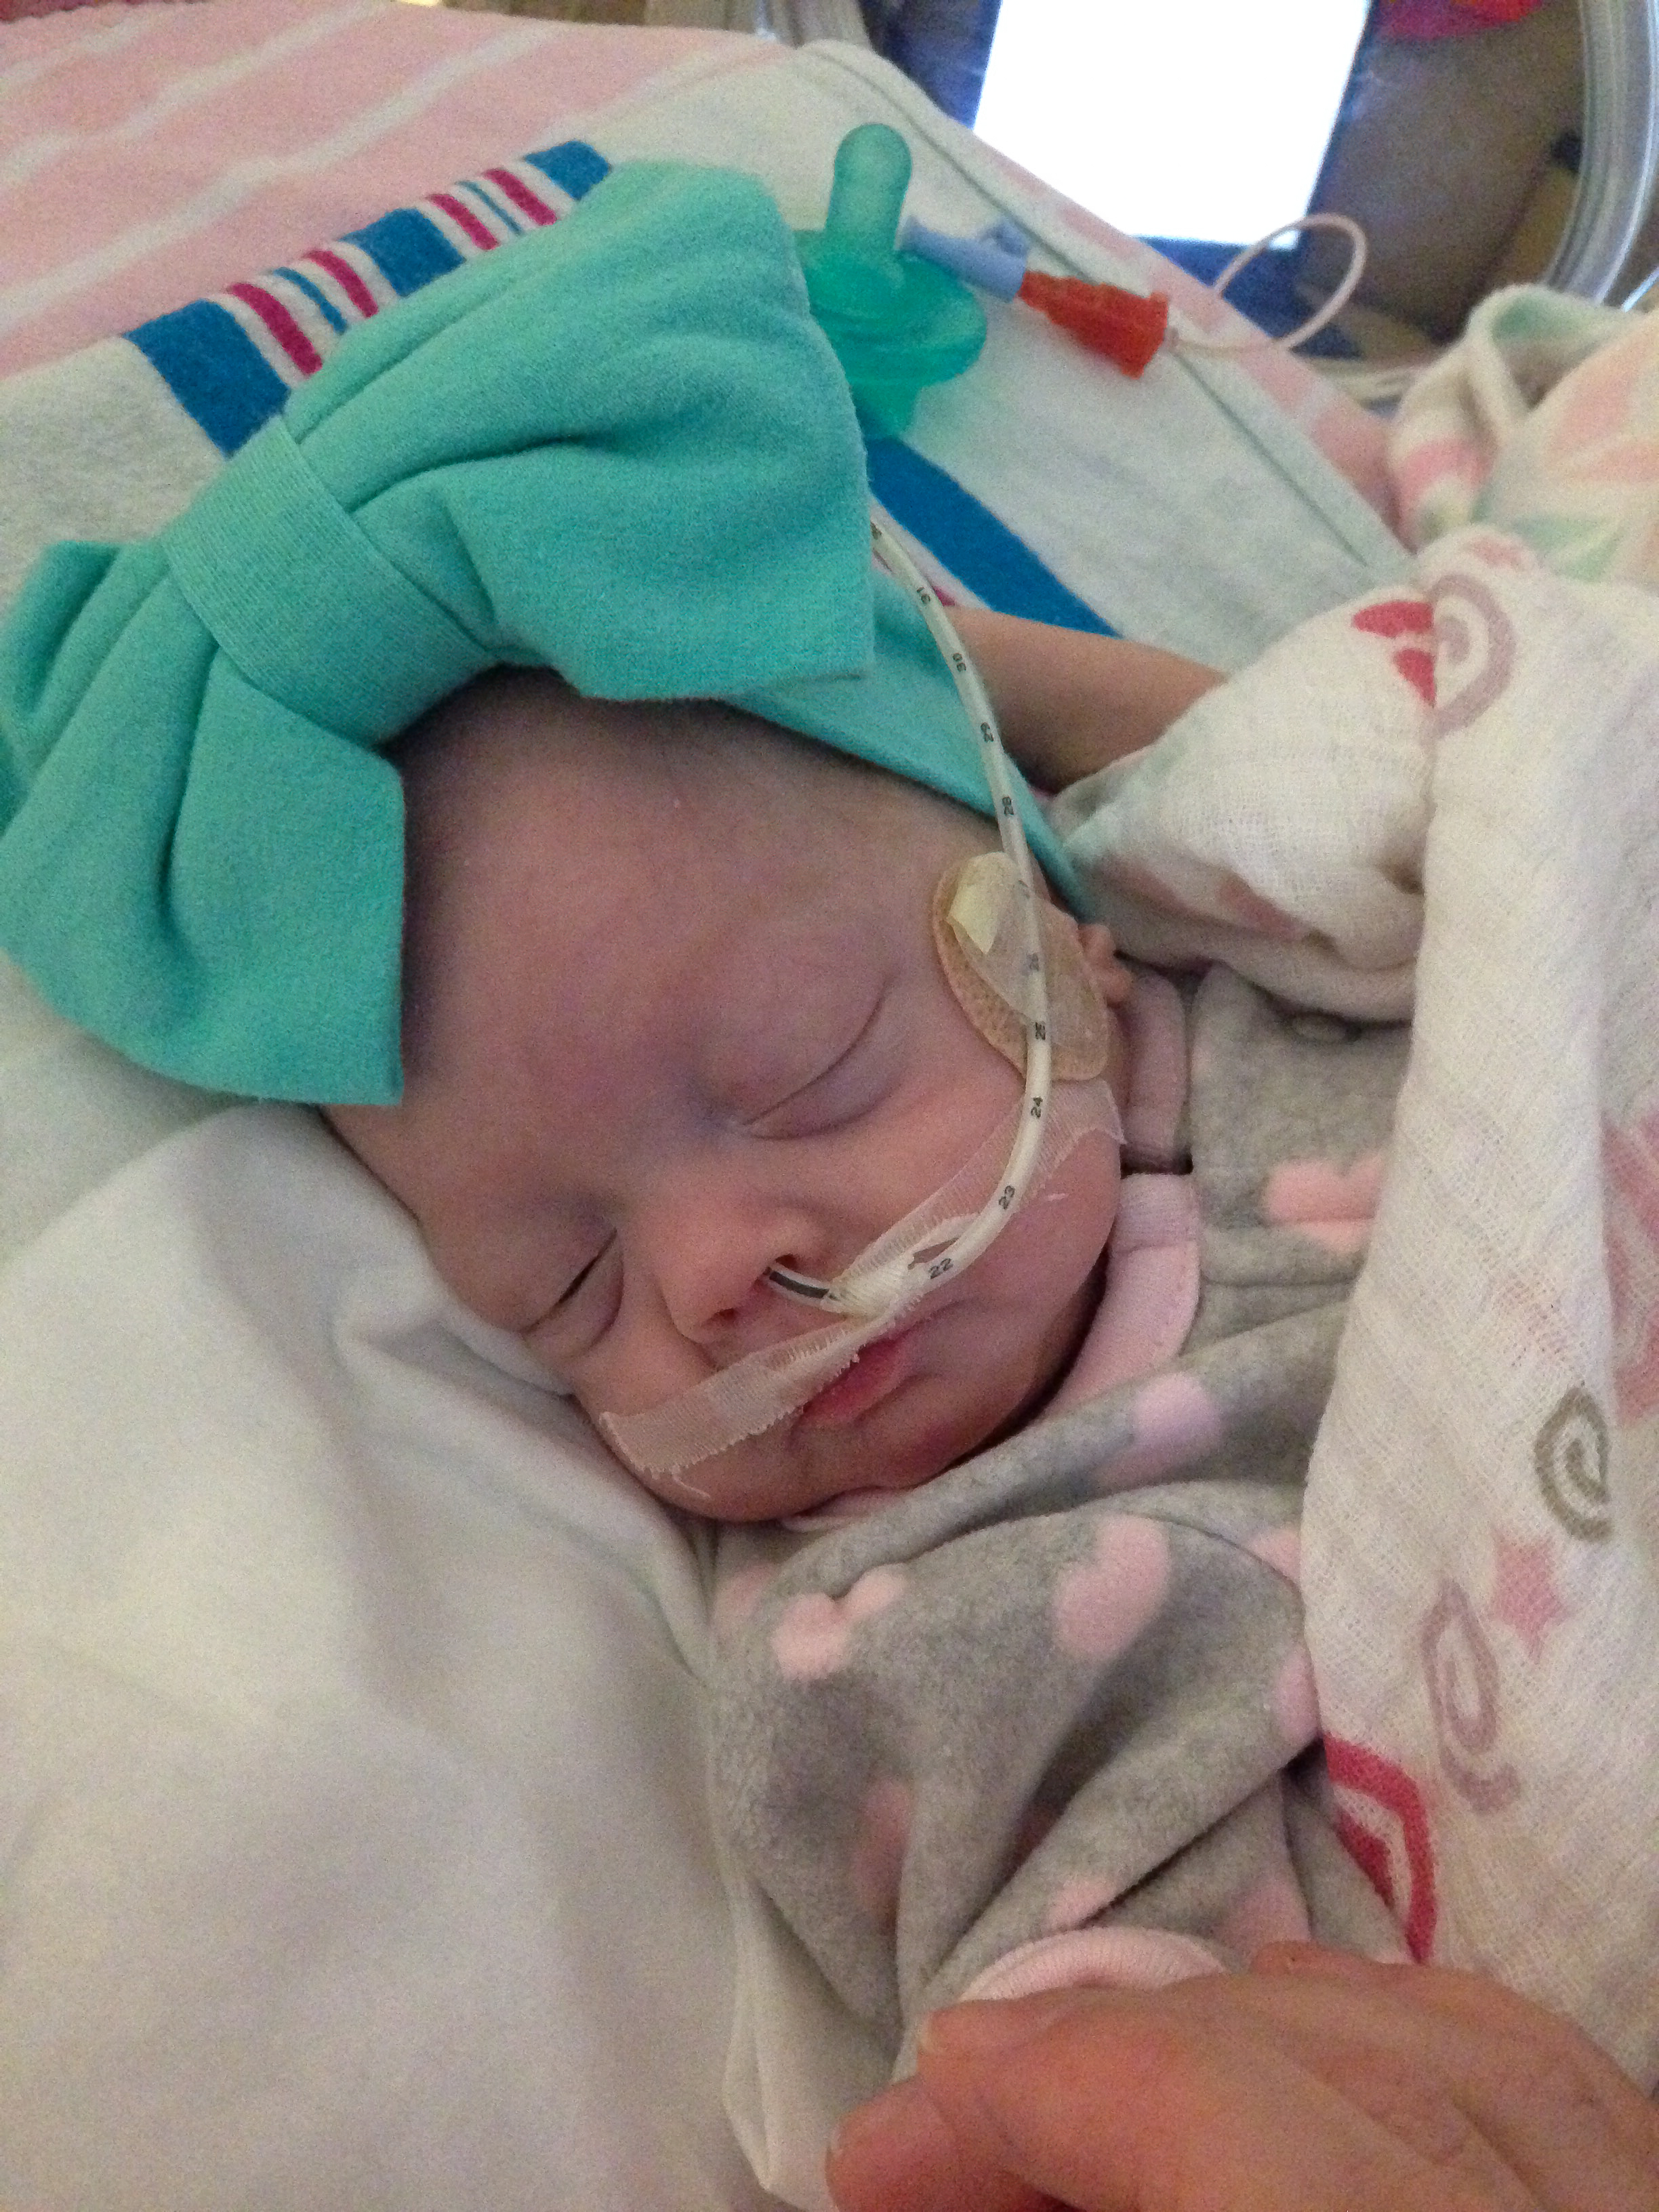 addie belle - diary of a NICU dad - day 79 - shegotguts.com-1.jpg